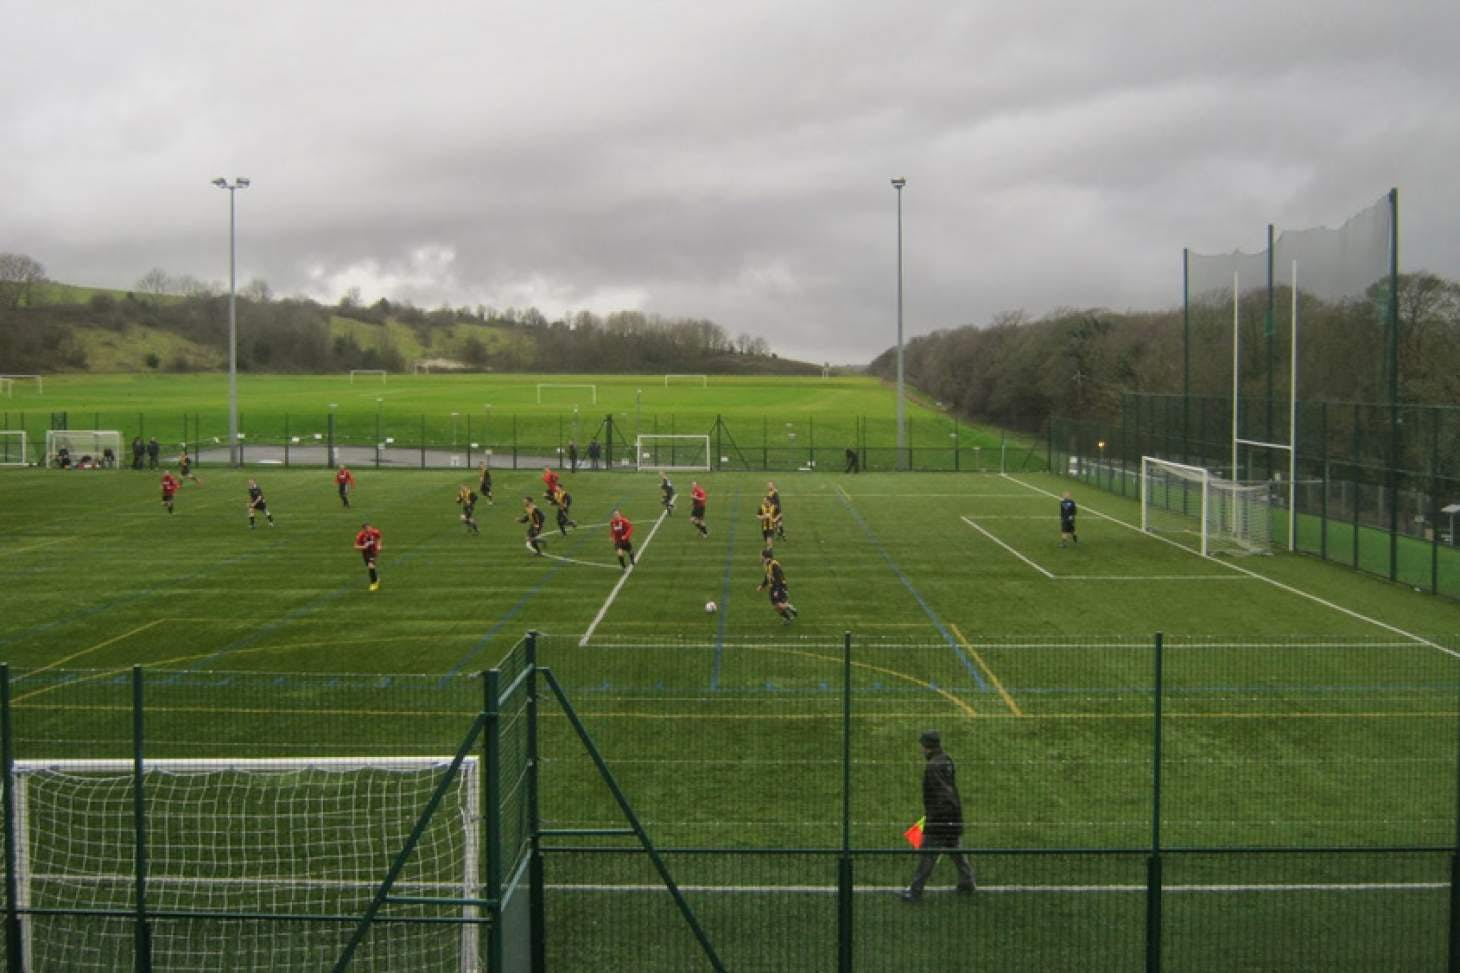 University Of Brighton (Falmer Campus) 11 a side | 3G Astroturf football pitch